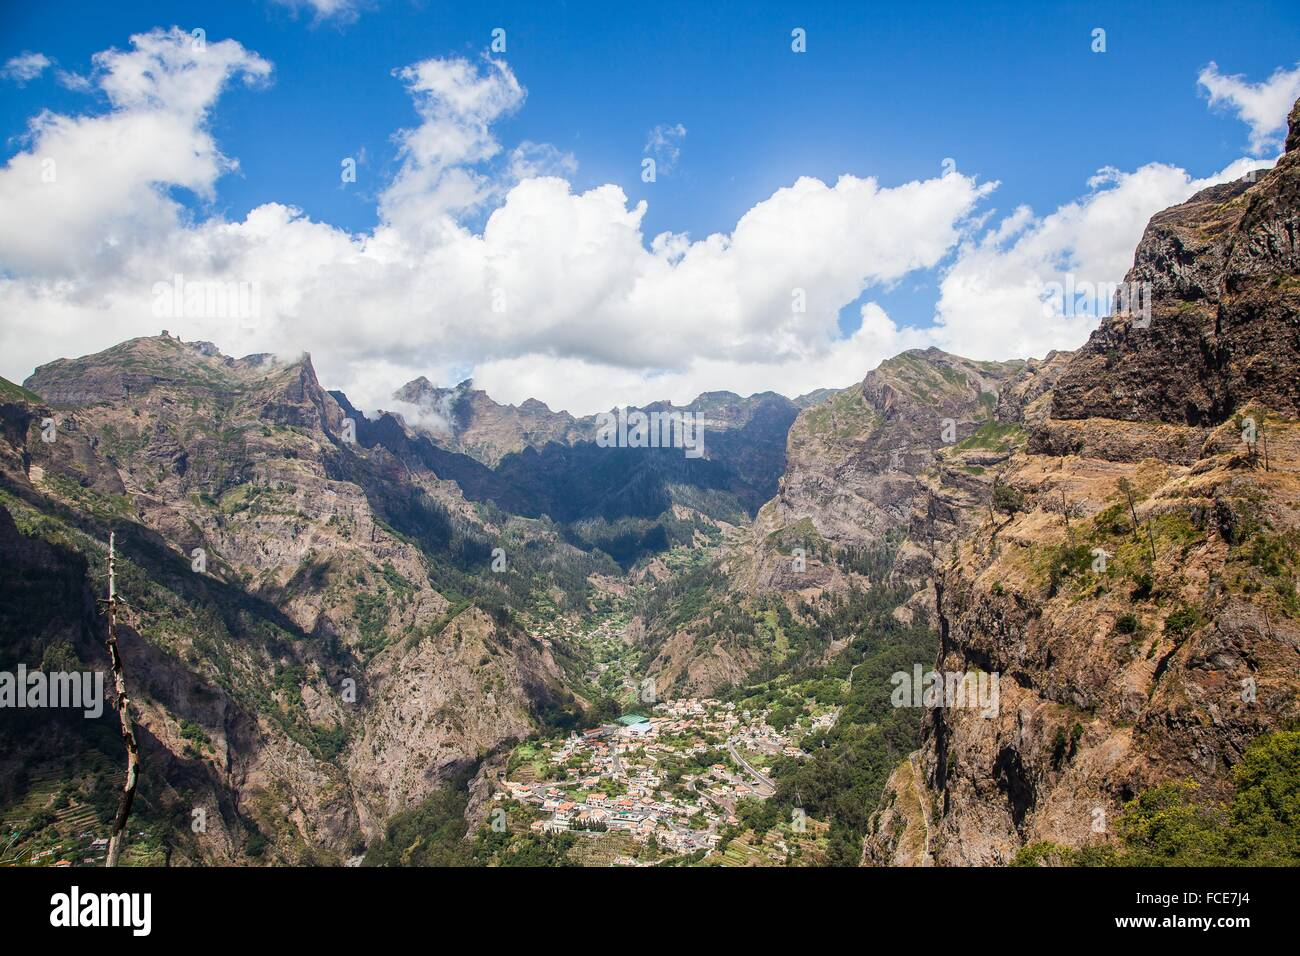 Madeira Island, Curral das freiras, view of the valley and the village - Stock Image